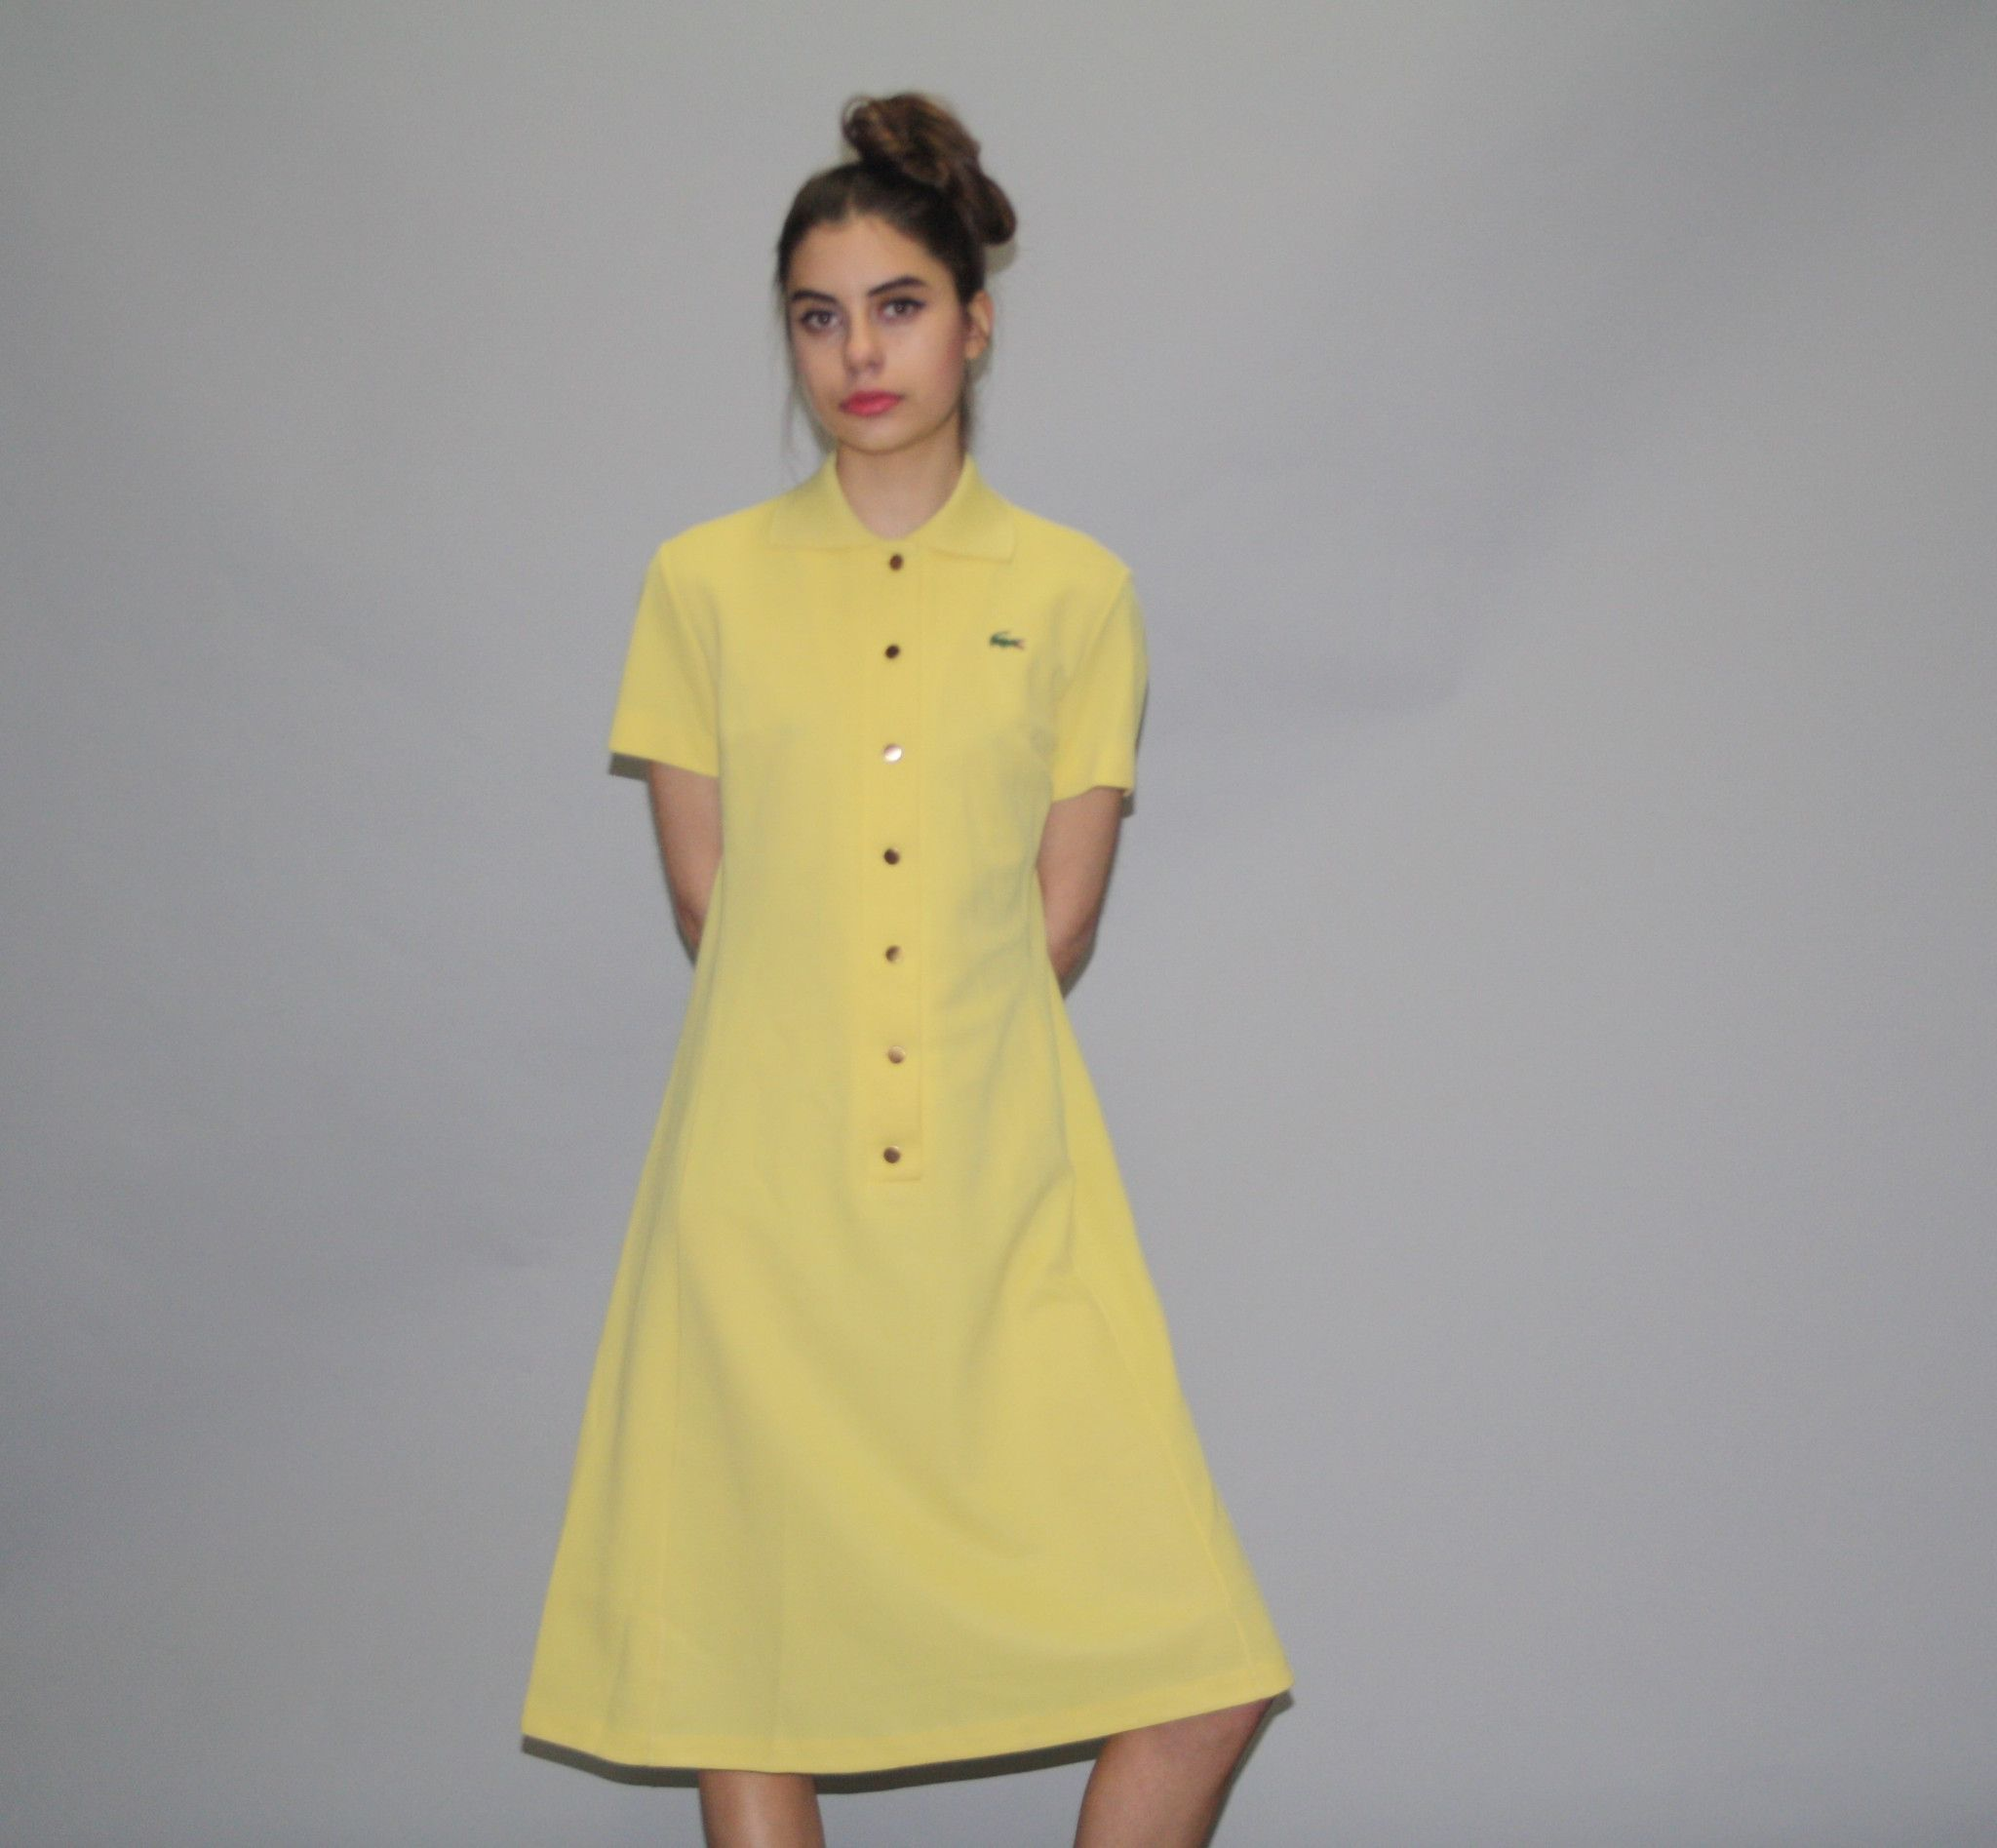 824cf429 1960s Vintage Lacoste Izod Yellow Tennis Shirt Dress - Vintage Lacoste Dress